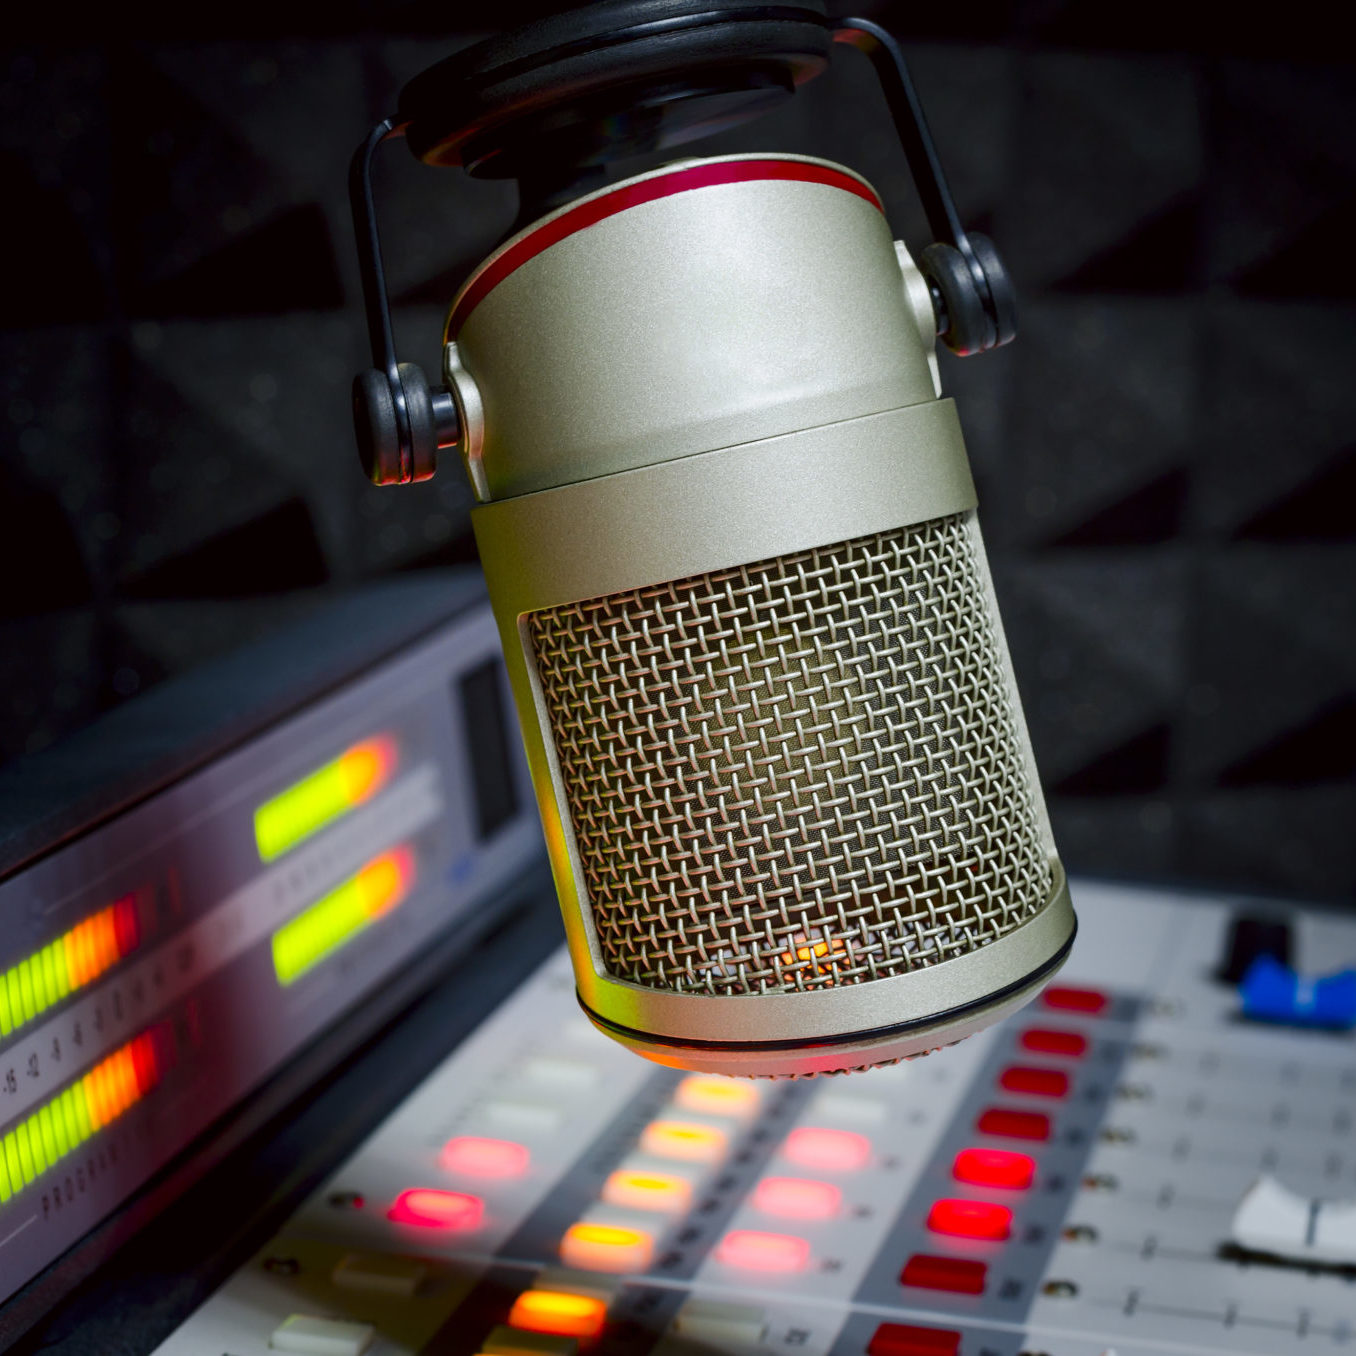 microphone and audio console in the dark radio studio